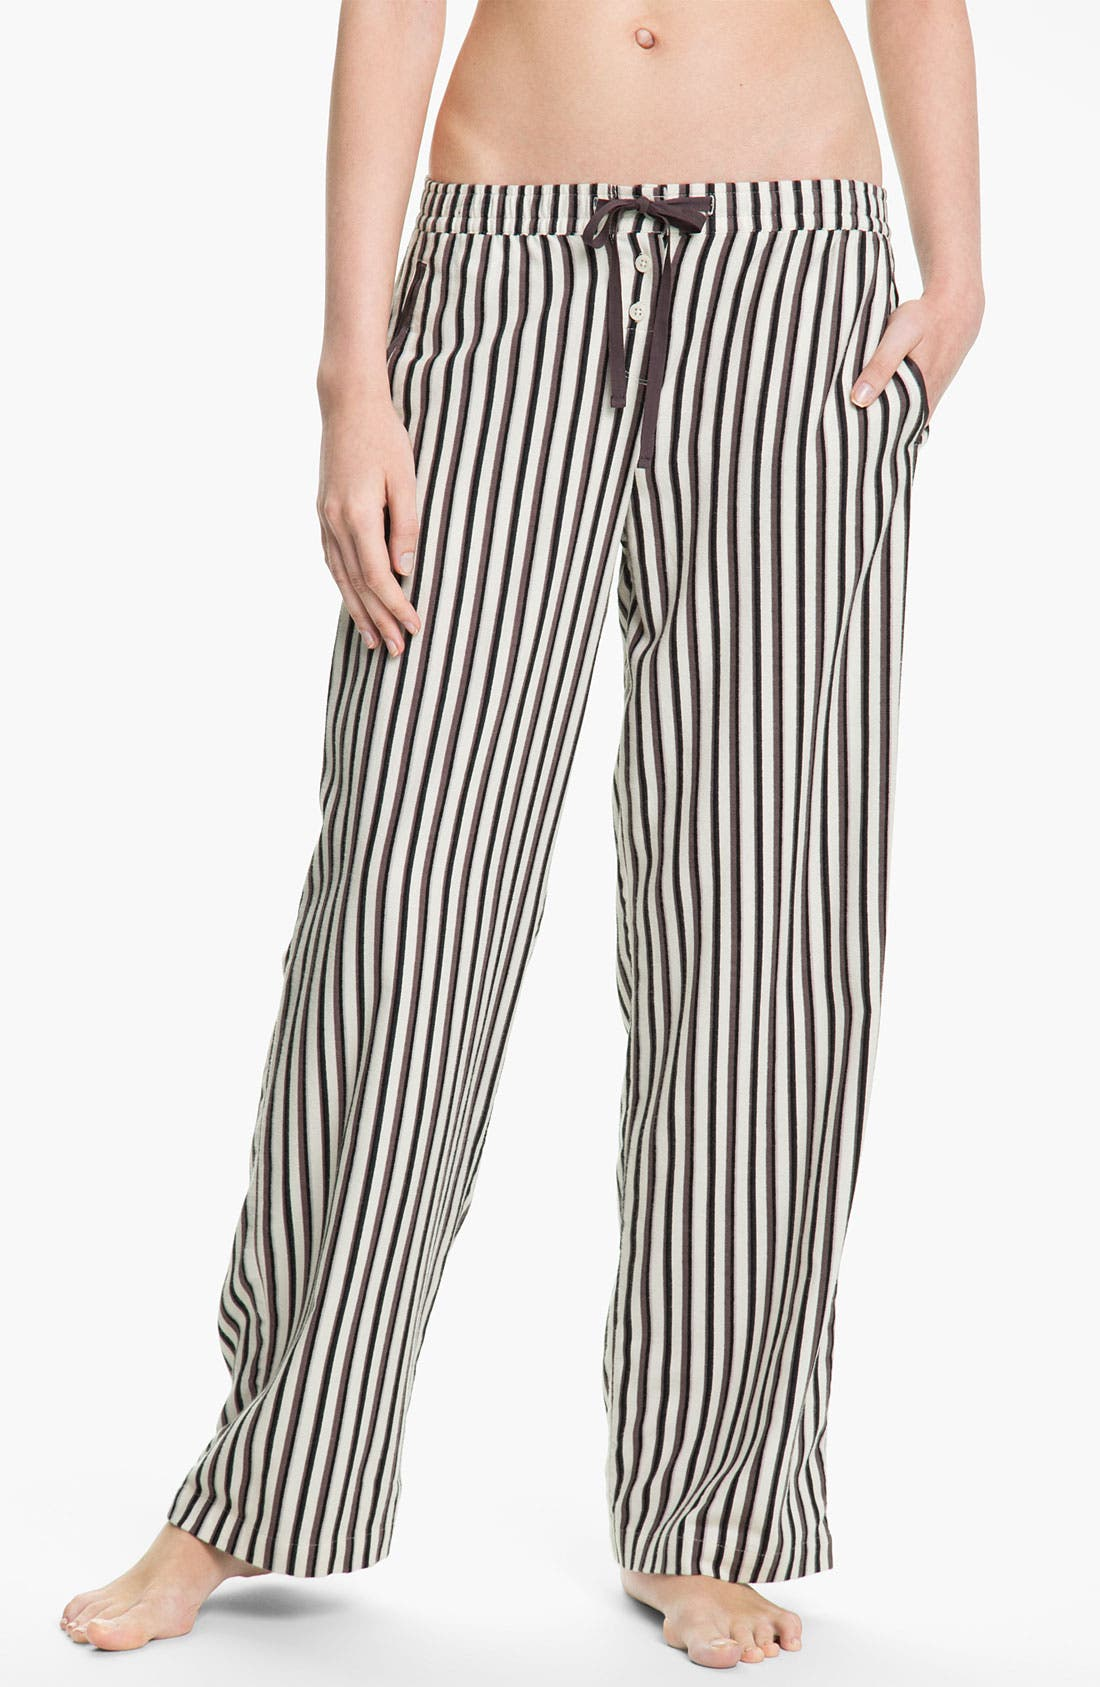 Alternate Image 1 Selected - DKNY 'Man's World' Flannel Pajama Pants